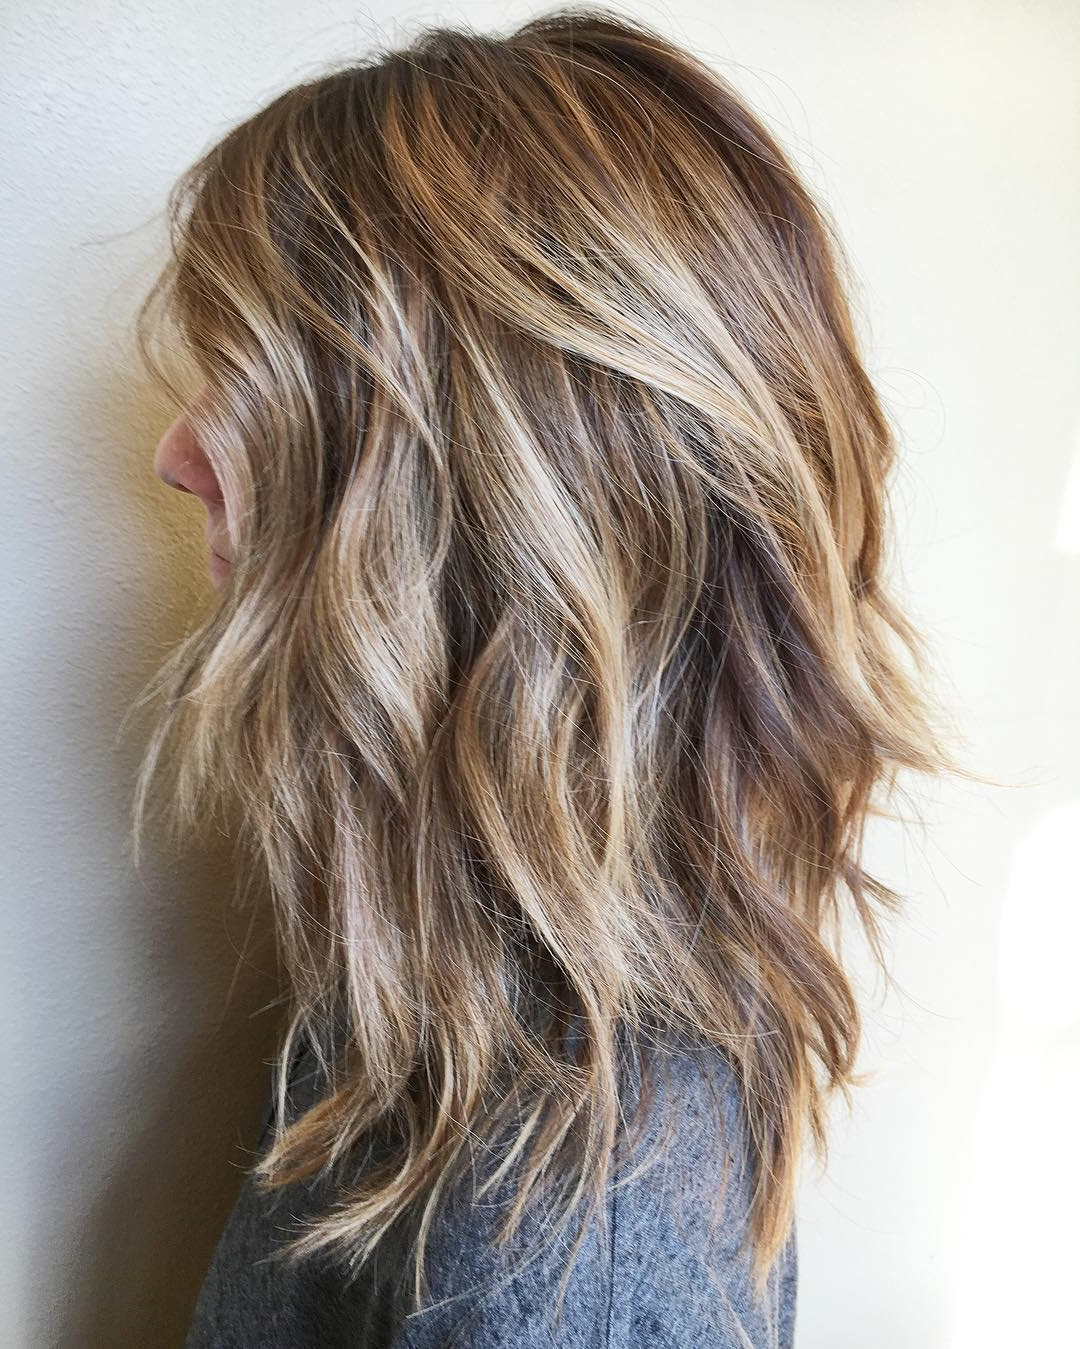 10 Messy Medium Hairstyles For Thick Hair 2019 Throughout 2017 Brunette Messy Shag Hairstyles (Gallery 15 of 20)